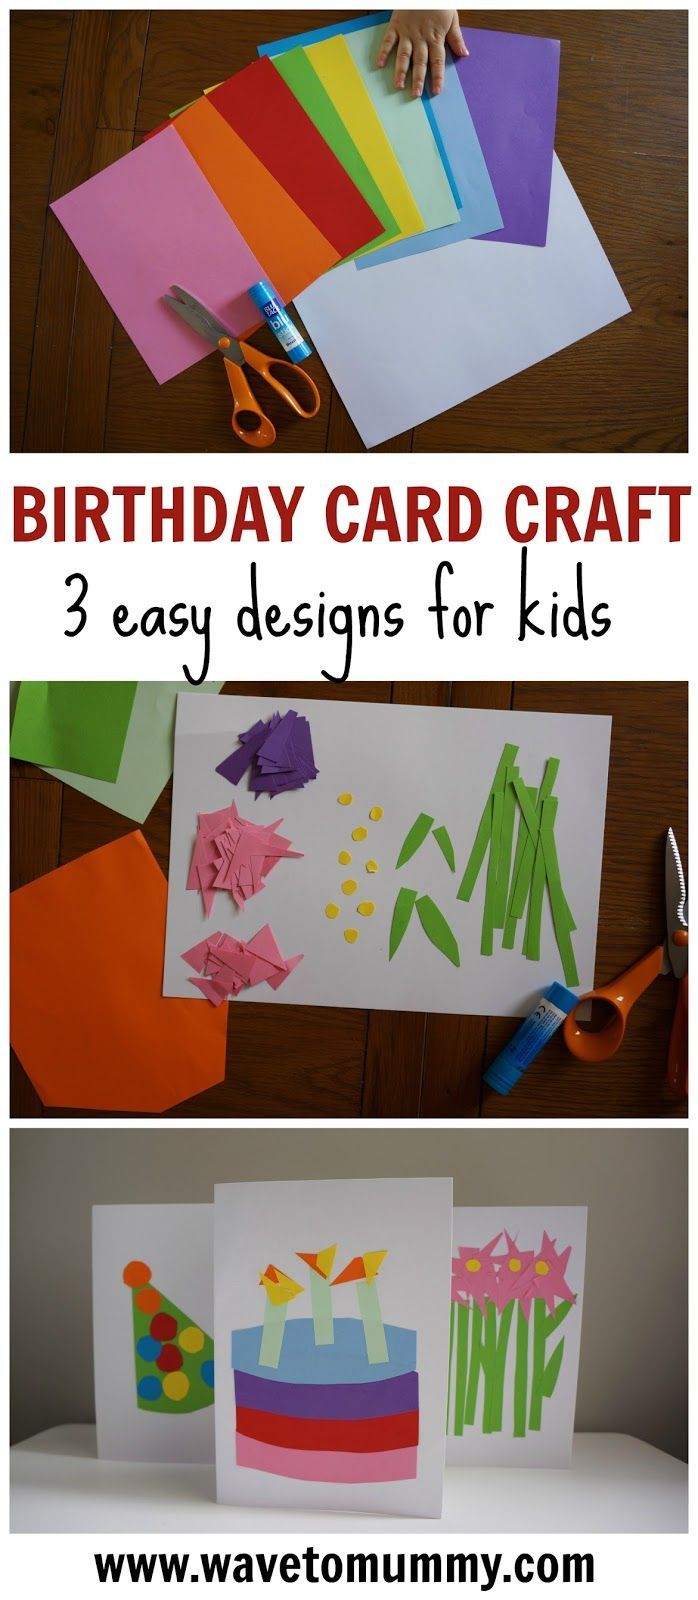 How to 3 easy birthday card crafts to do with toddlers paper how to 3 easy birthday card crafts to do with toddlers jeuxipadfo Images